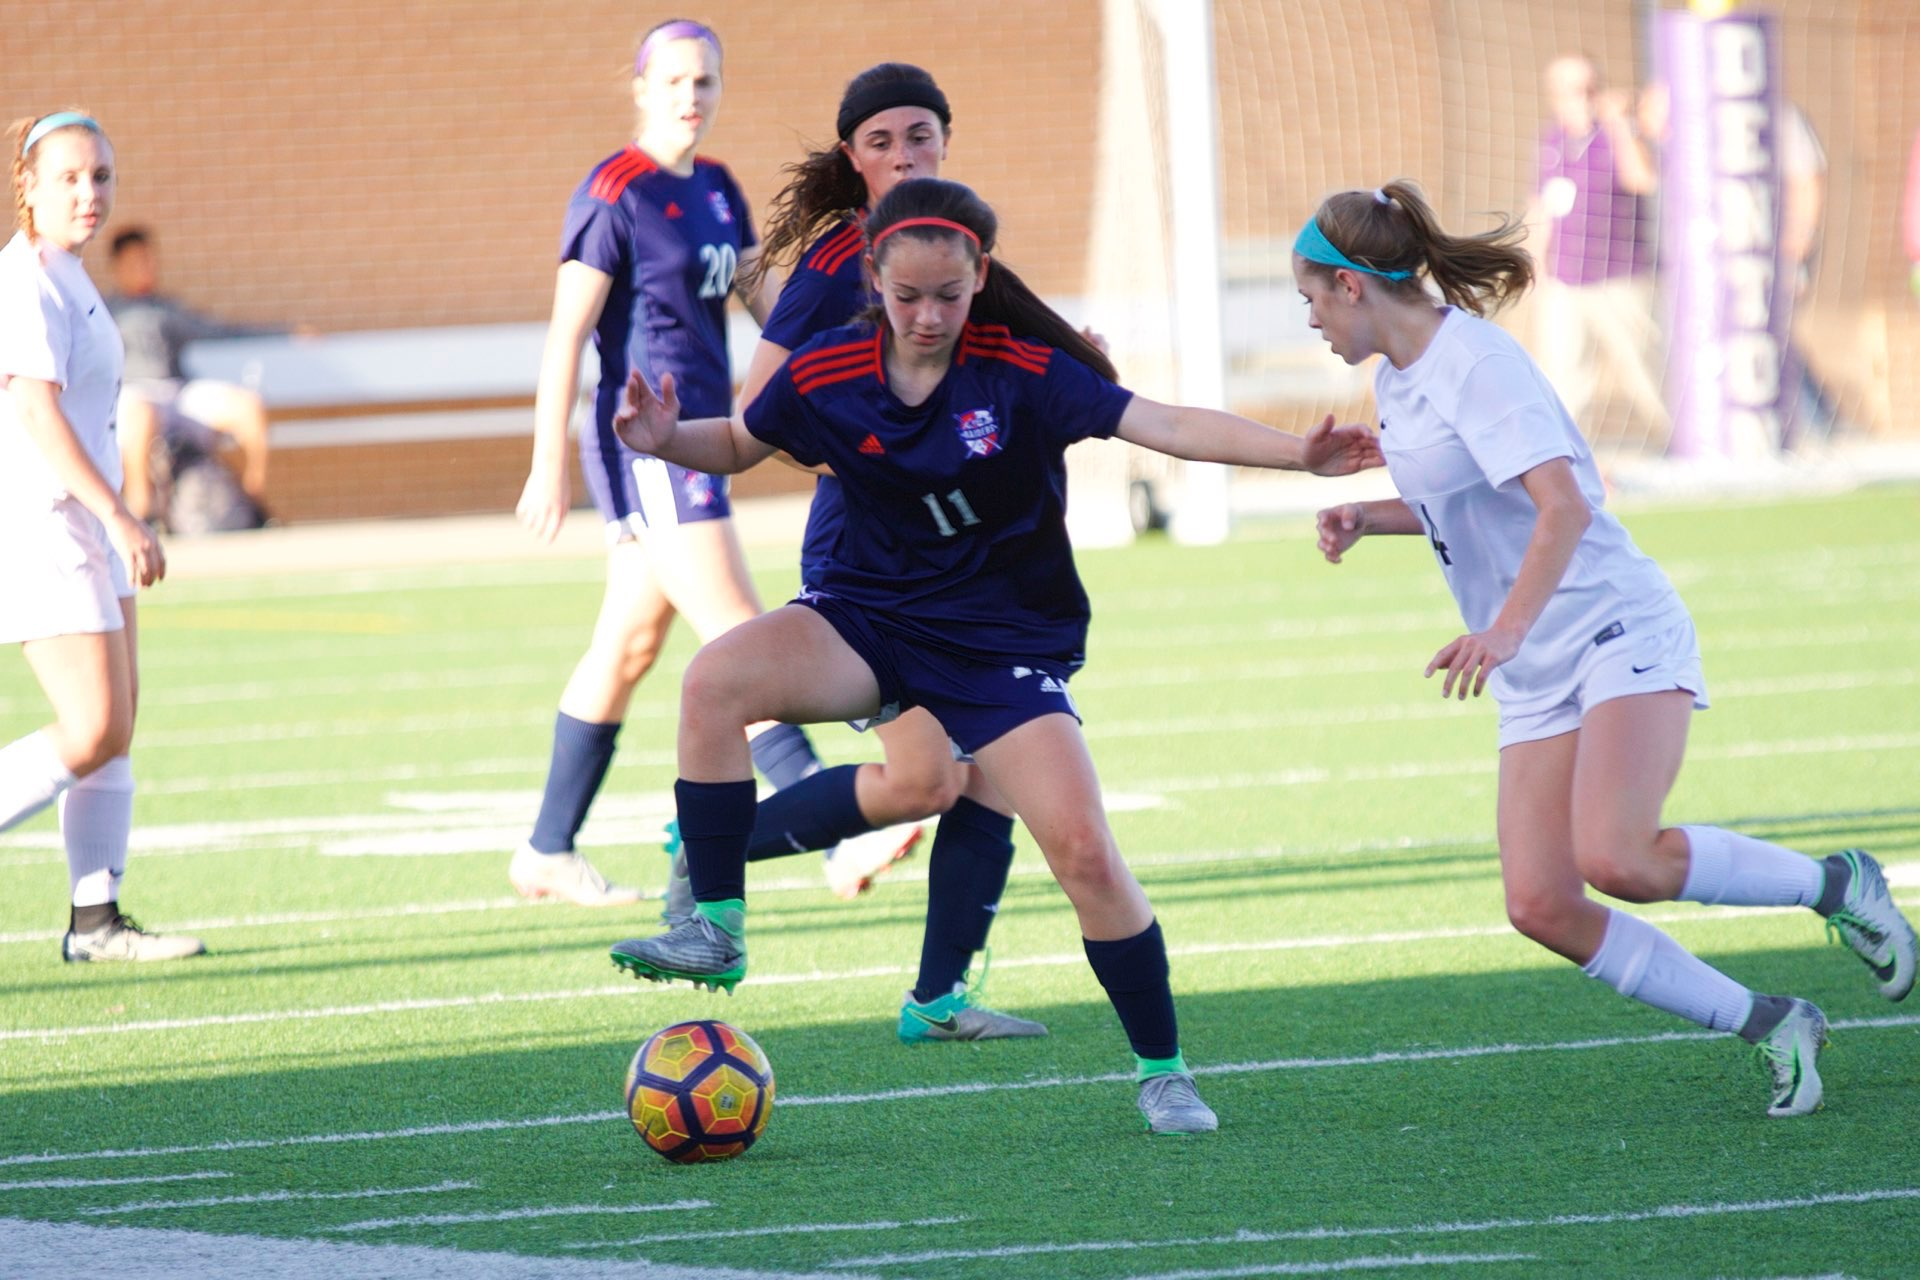 Soccer: 2017-2018 Boys and Girls Schedules